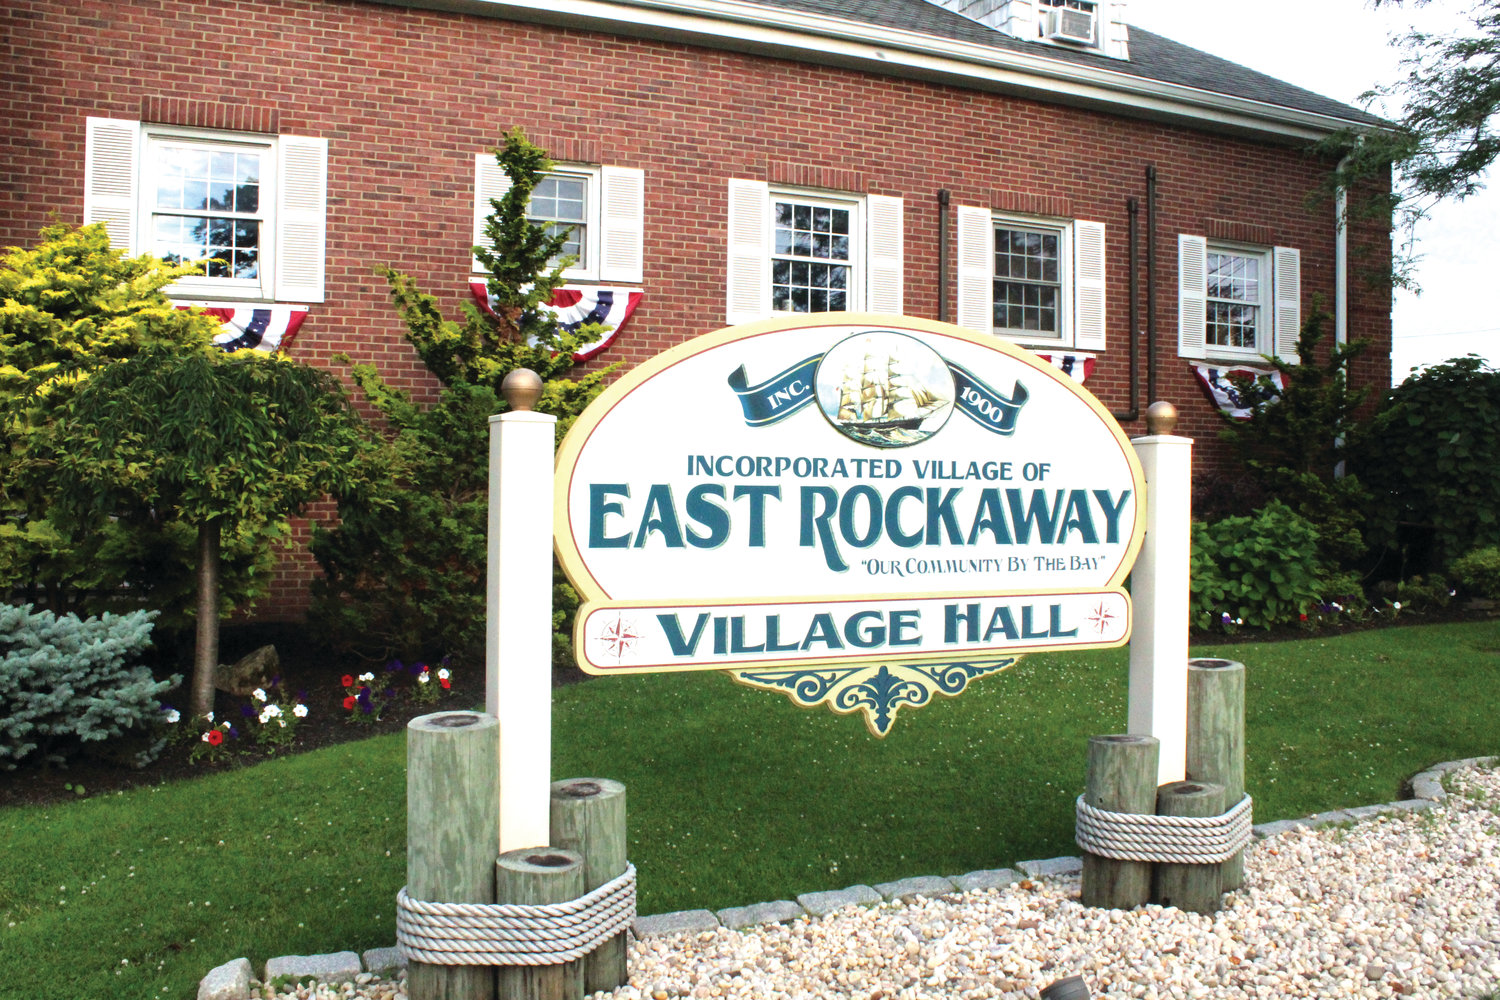 The Village of East Rockaway Board voted last week to approve a moratorium on solicitation until it can review the legality of its solicitation law, after it was hit with a suit.